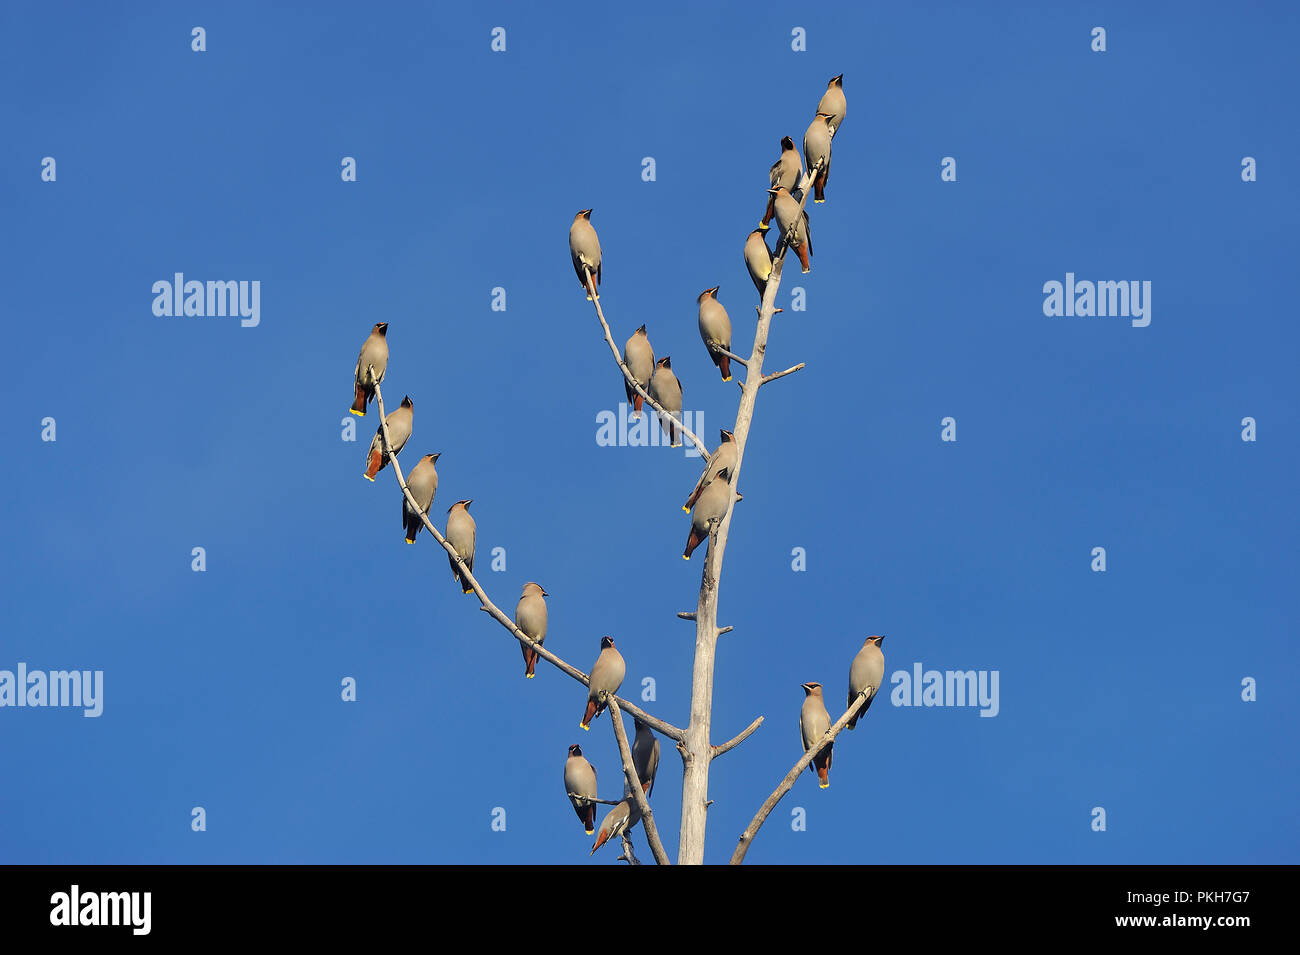 A flock of Cedar-waxwing birds perched in a dead tree against a blue sky background in rural Alberta Canada. - Stock Image